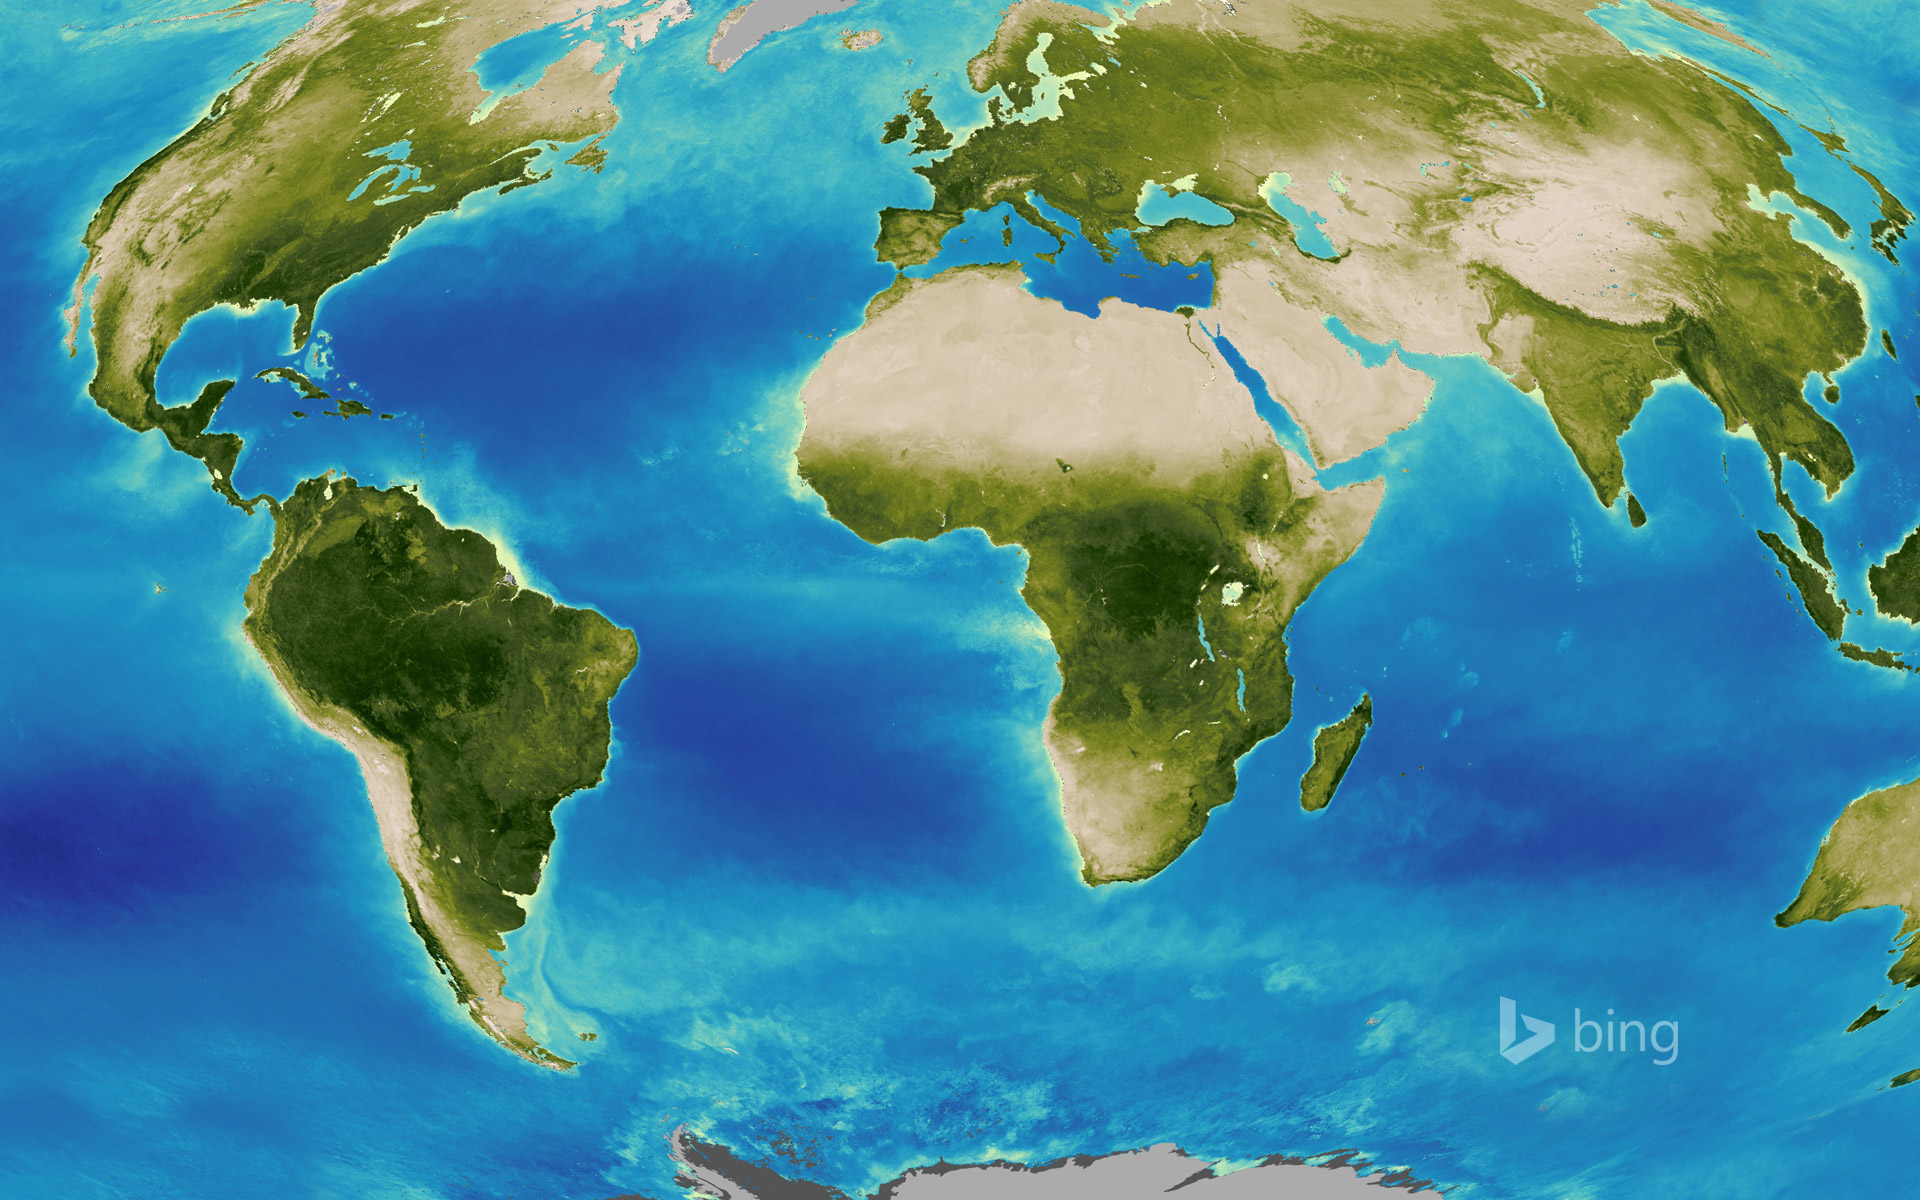 Map of Earth created by the Global Inventory Modeling and Mapping Studies (GIMMS) project at NASA's Goddard Space Flight Center